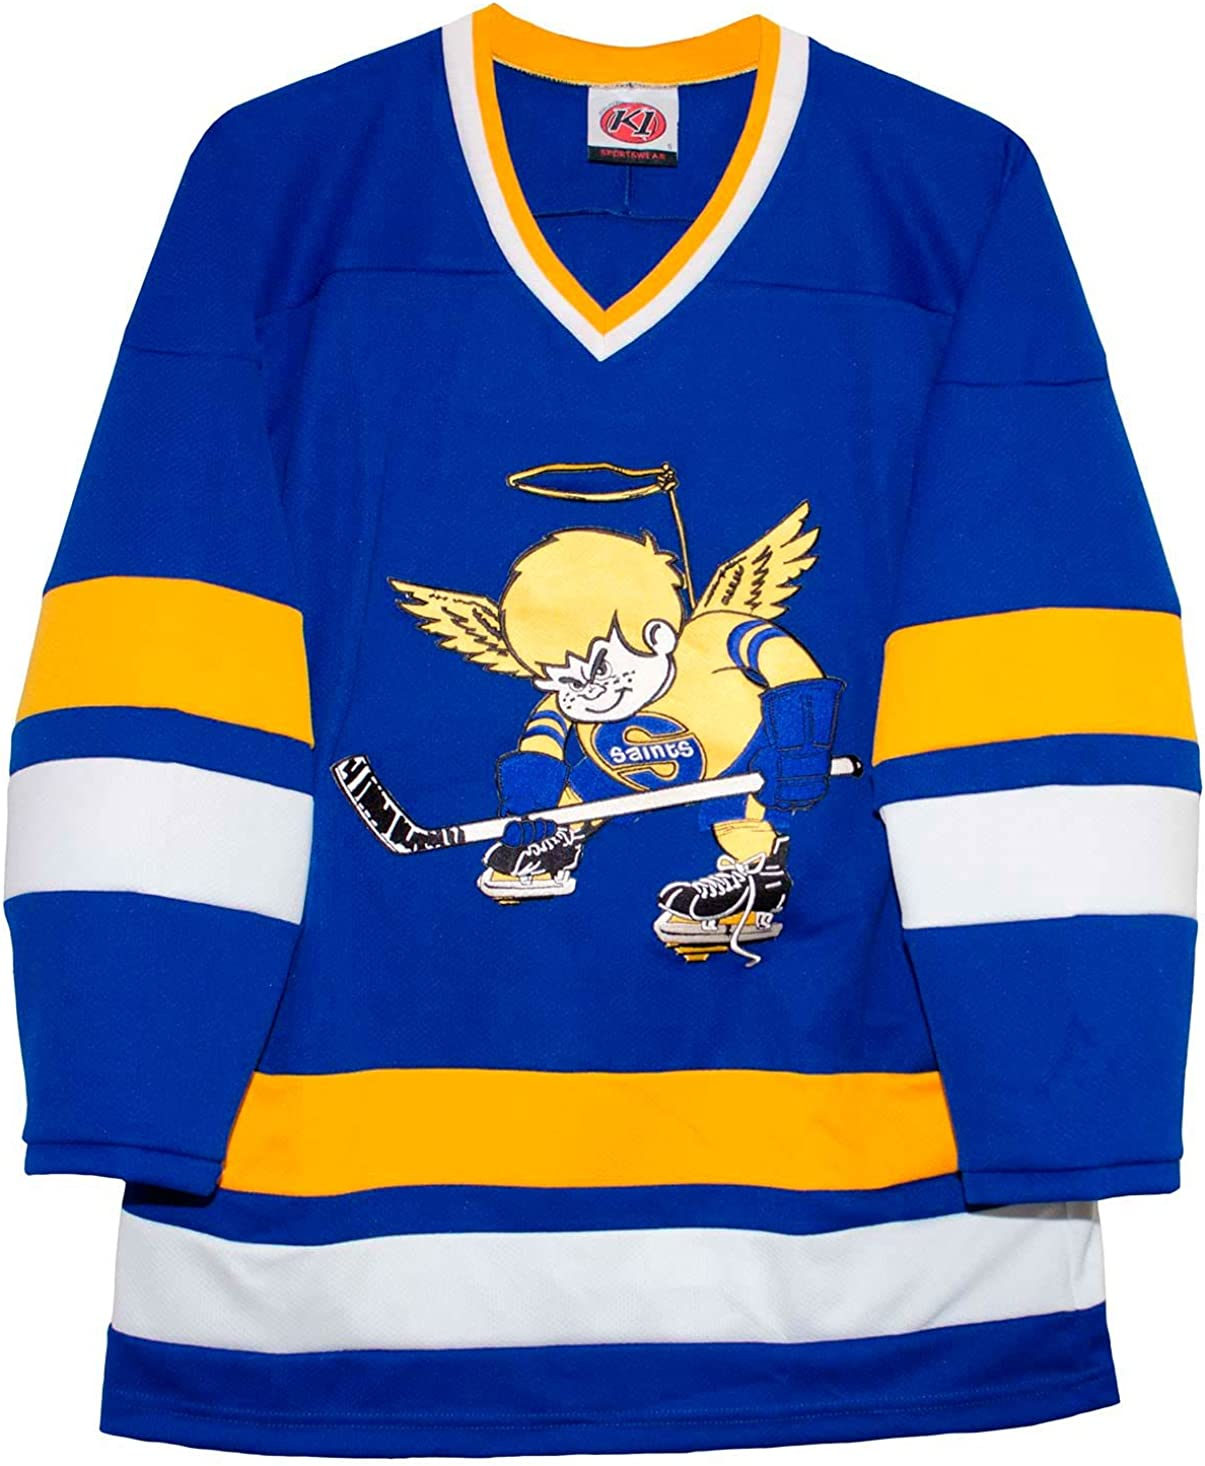 K-1 Sportswear Minnesota Fighting Saints Blue Away Vintage WHA Hockey Jersey